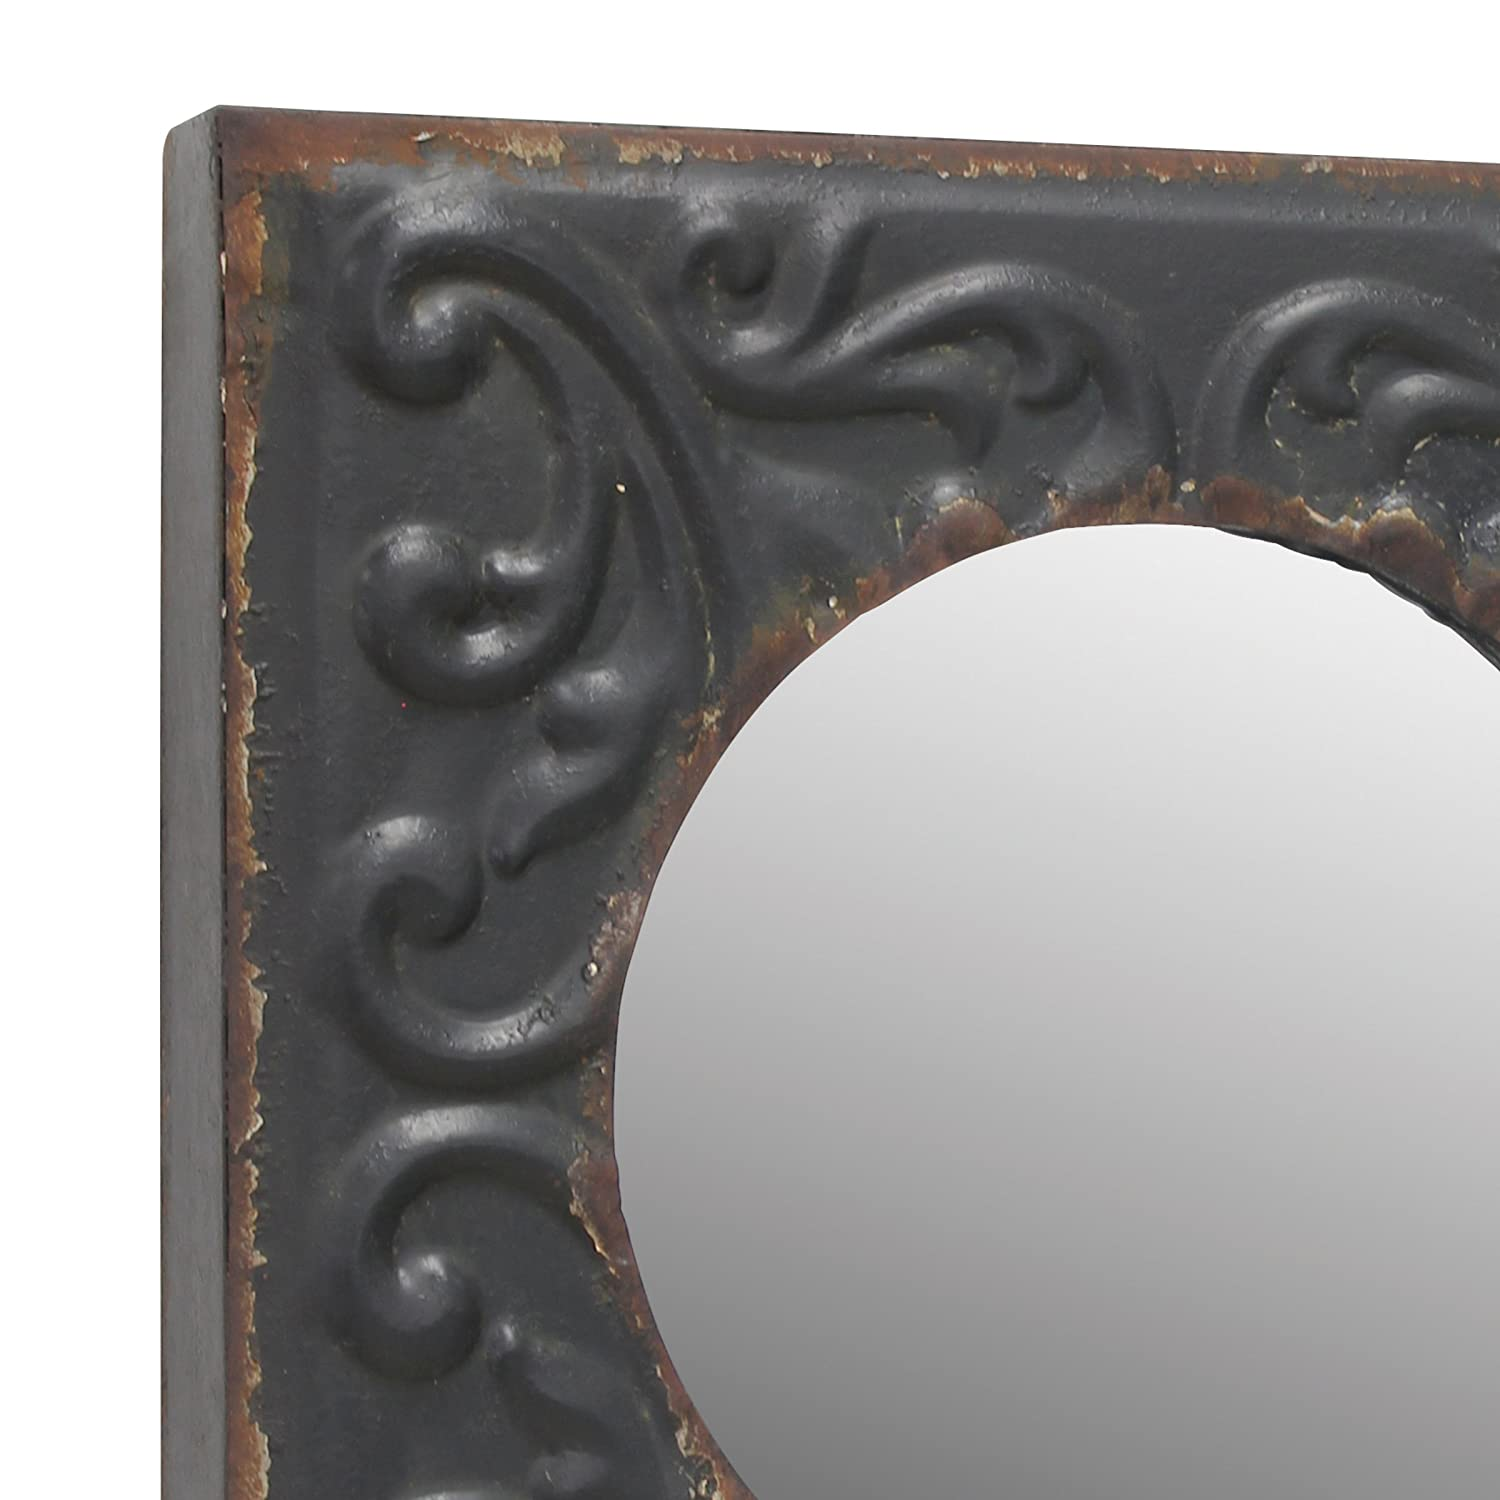 Stonebriar Round Mirror with Distressed Square Metal Tin Frame ; Industrial Wall Decor ; Distressed Finish ; With Attached Wall Hanger CKK Home Décor SB-6072M